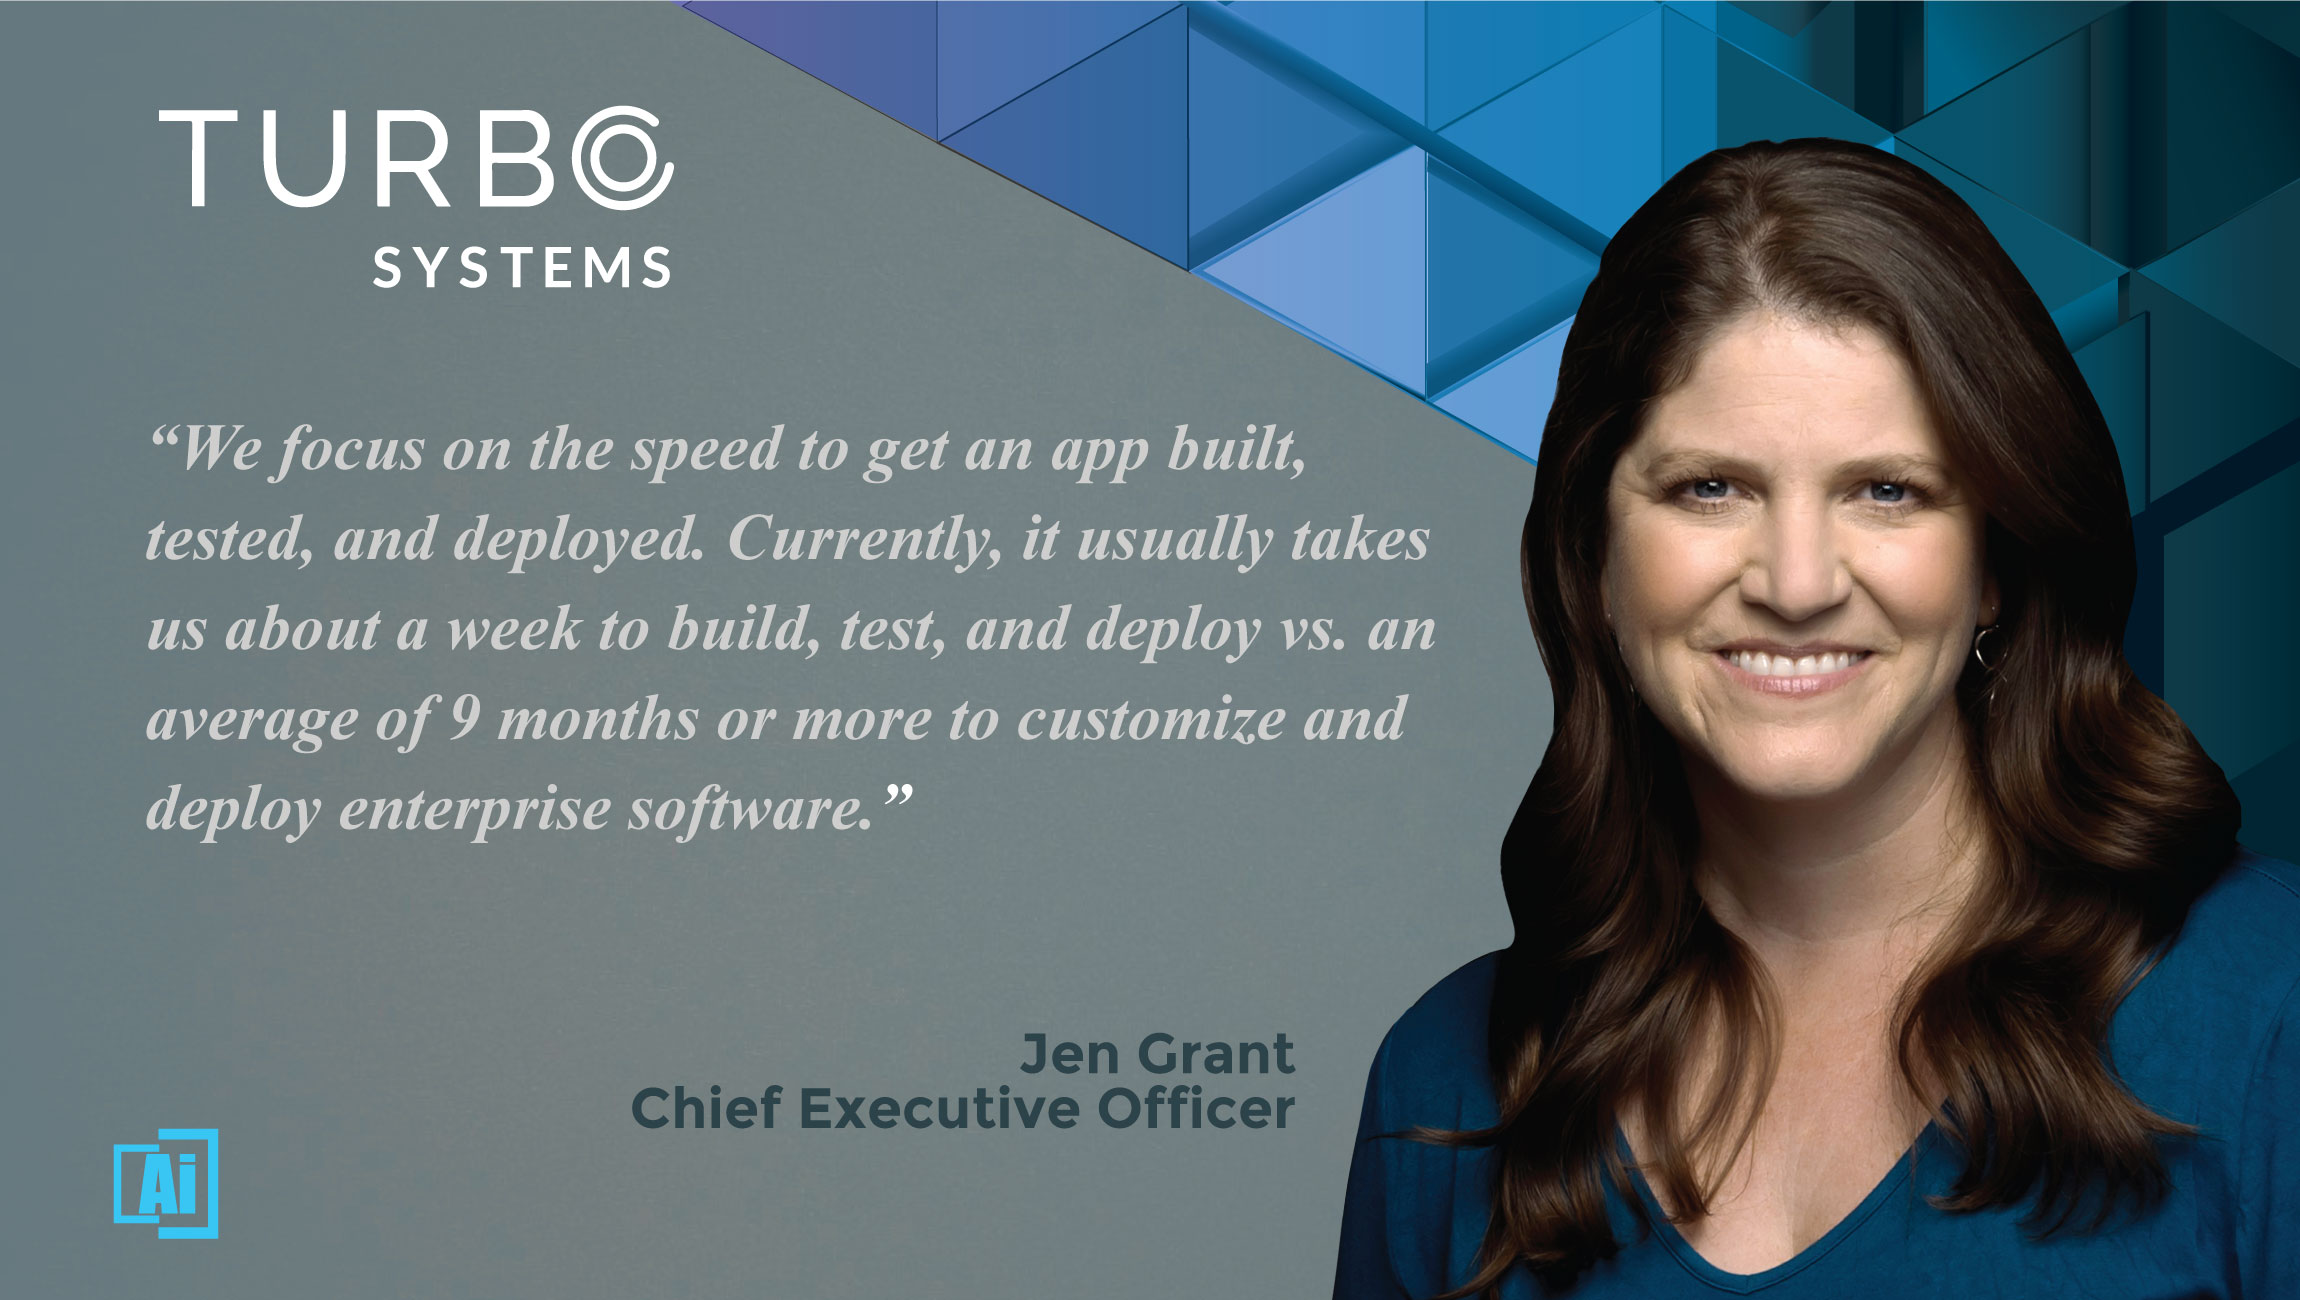 AiThority Interview With Jen Grant, Chief Executive Officer at Turbo Systems